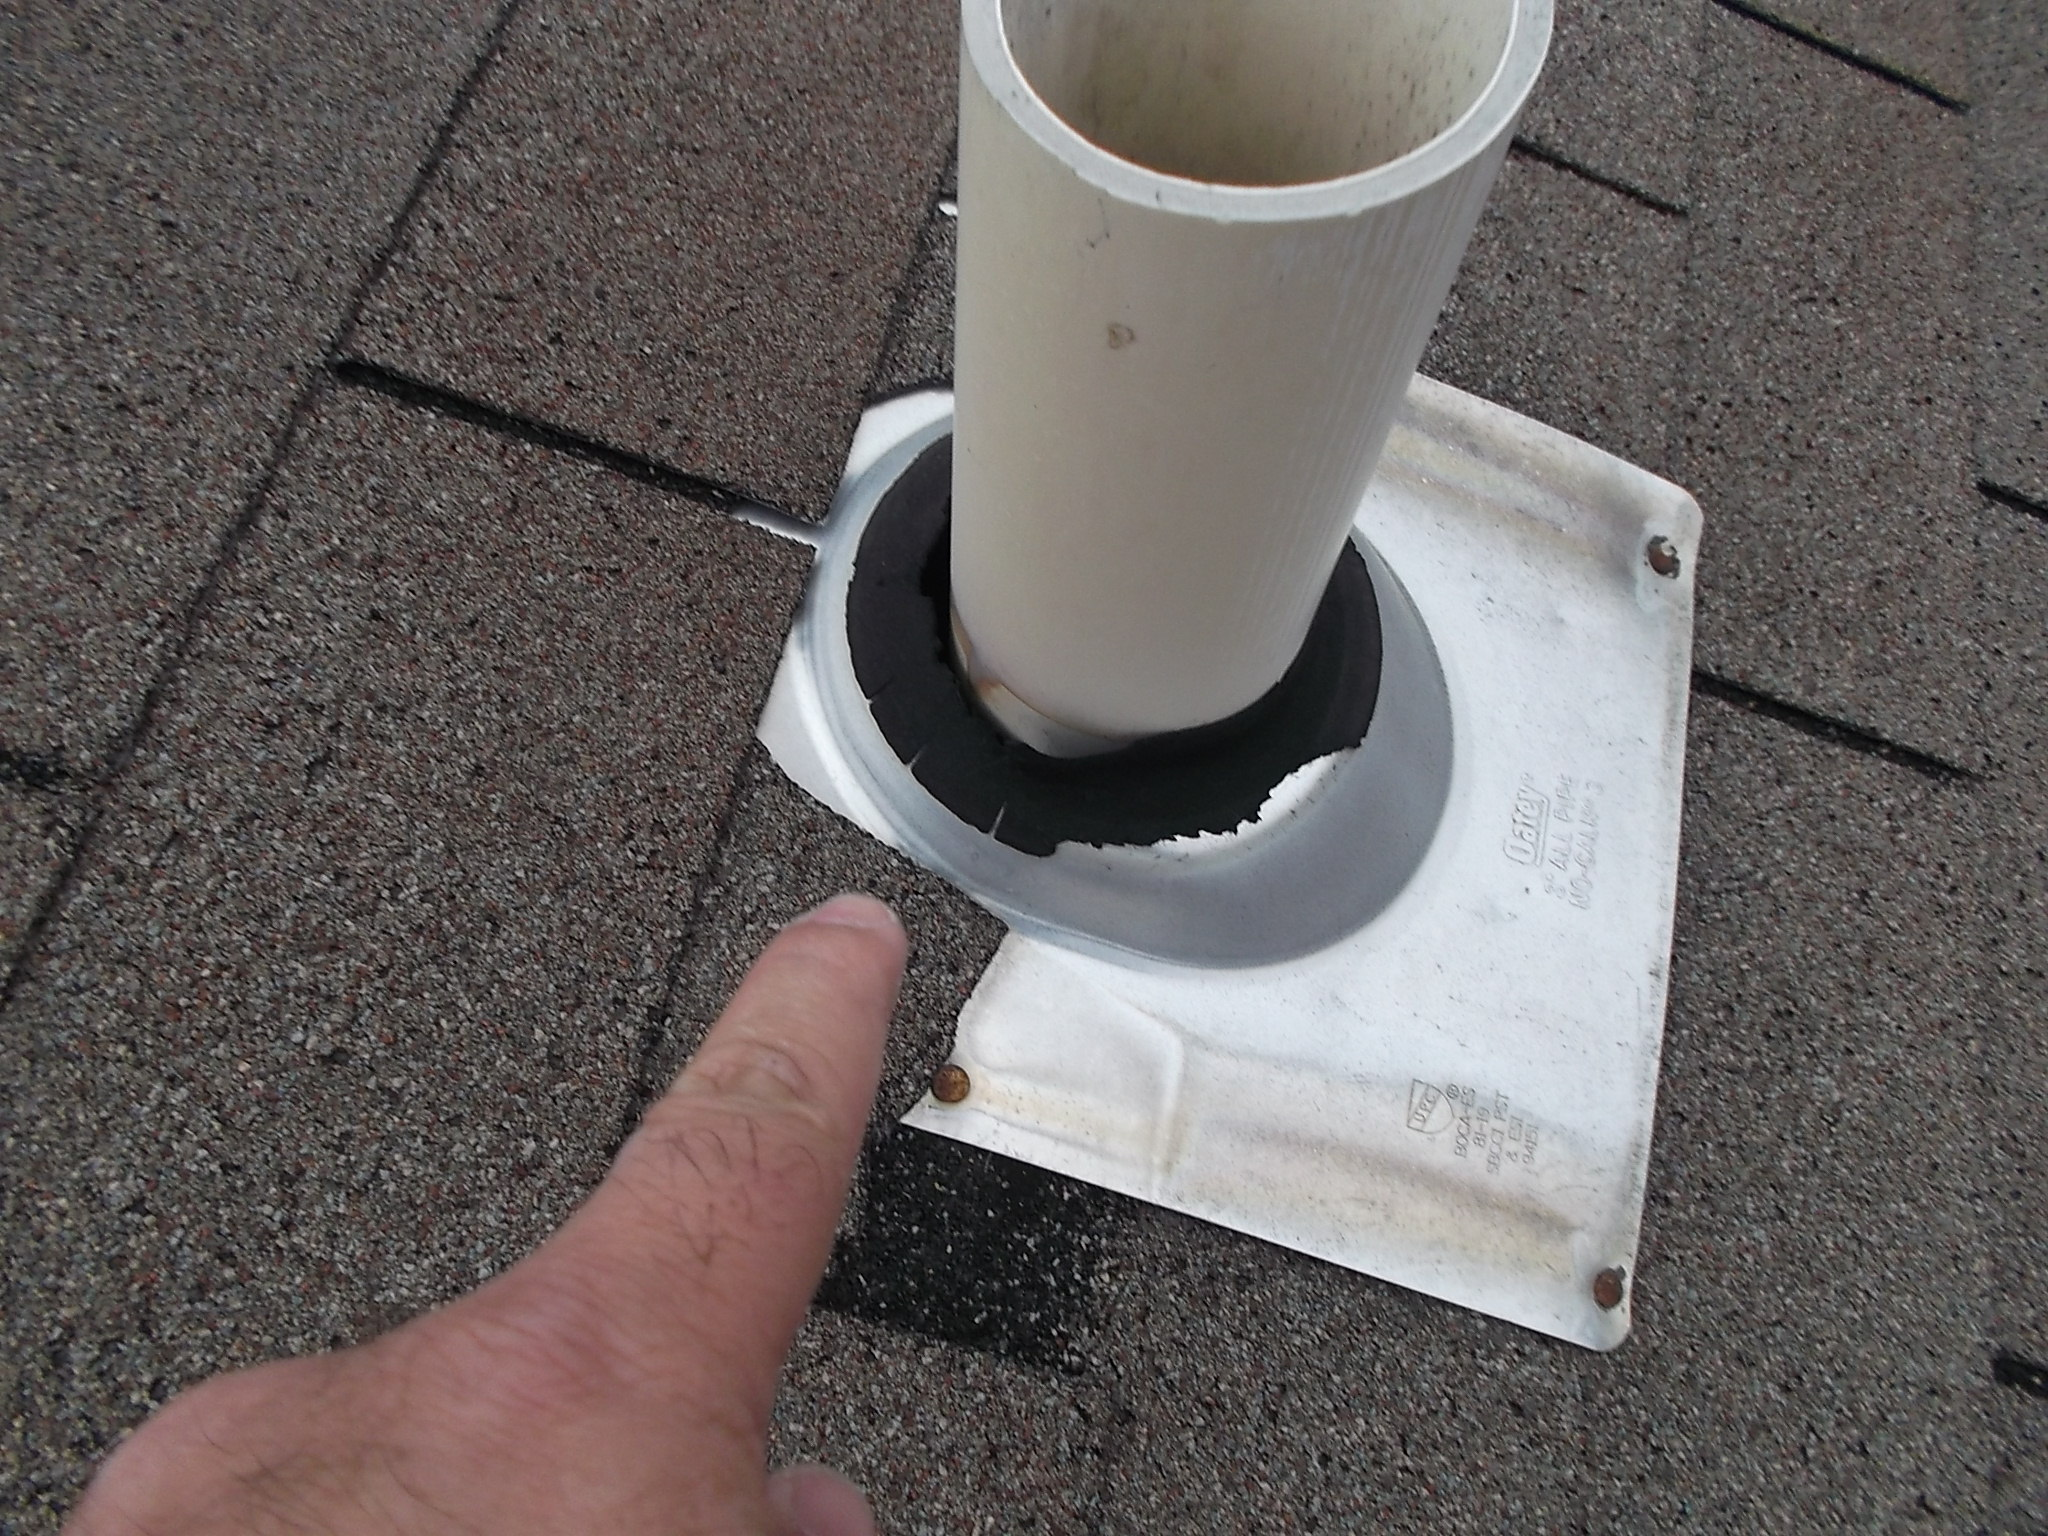 rotted rubber boot allowing water penetration to attic